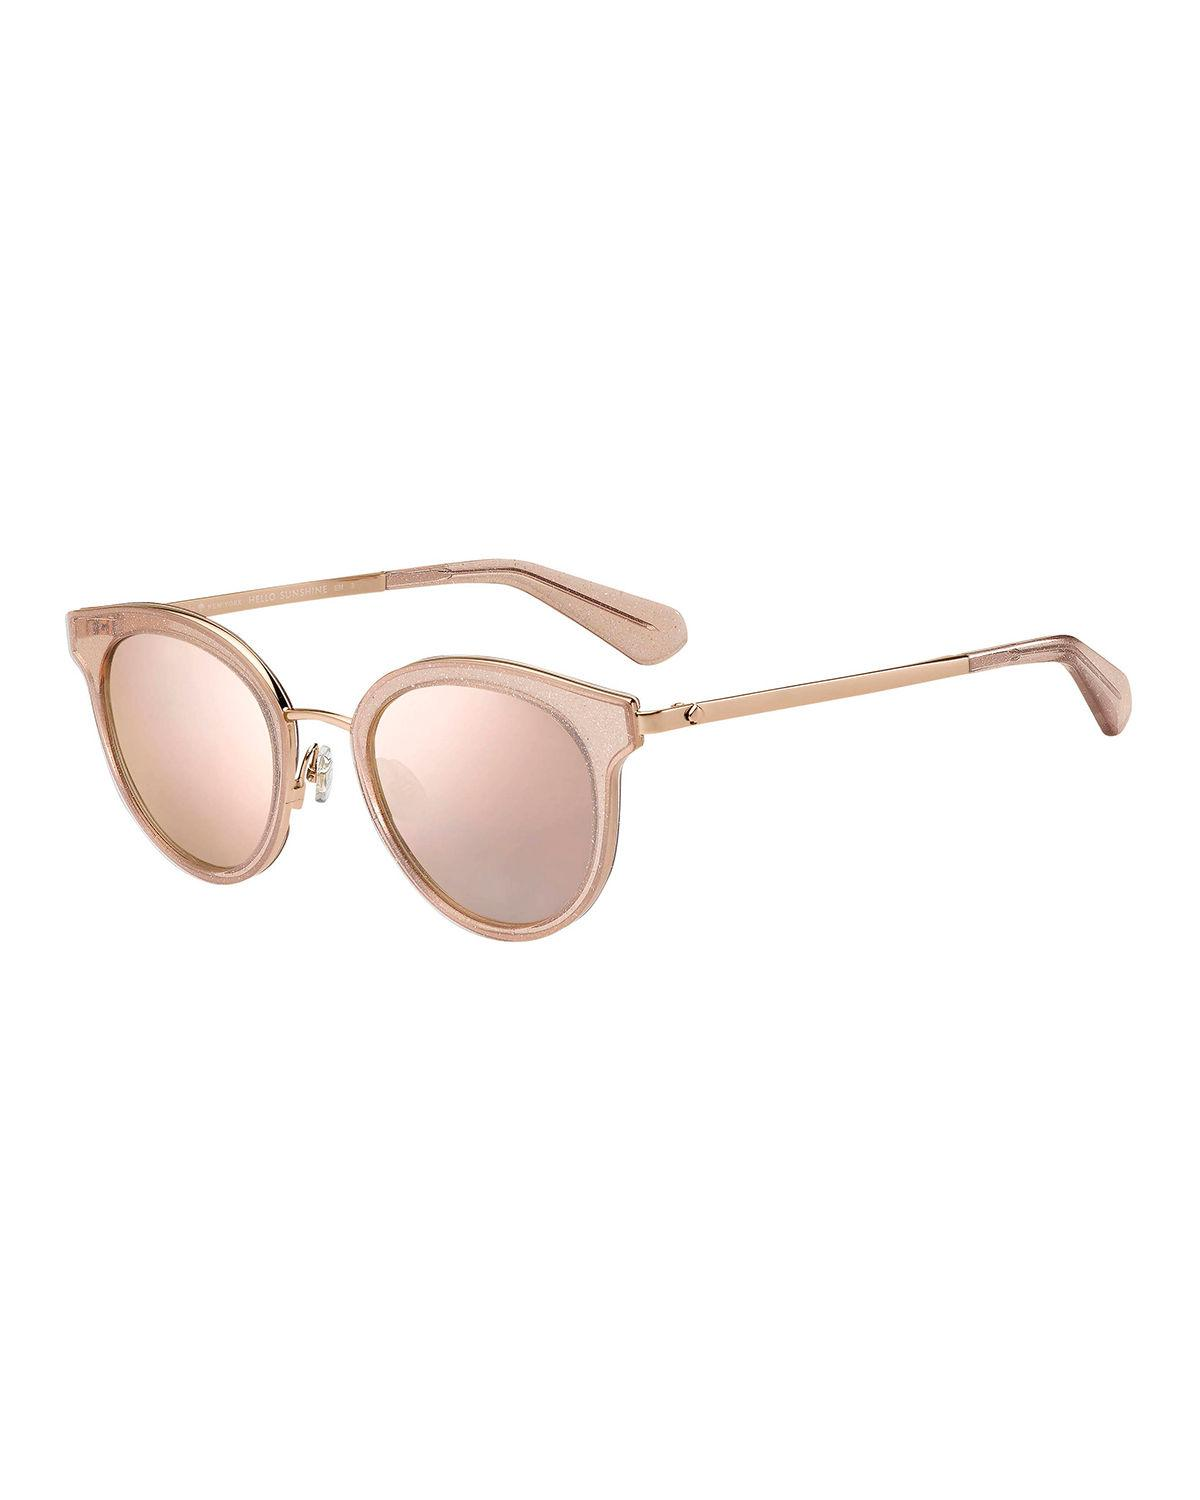 406633b9e4a Lyst - Kate Spade Lisannefs Round Mirrored Sunglasses in Pink